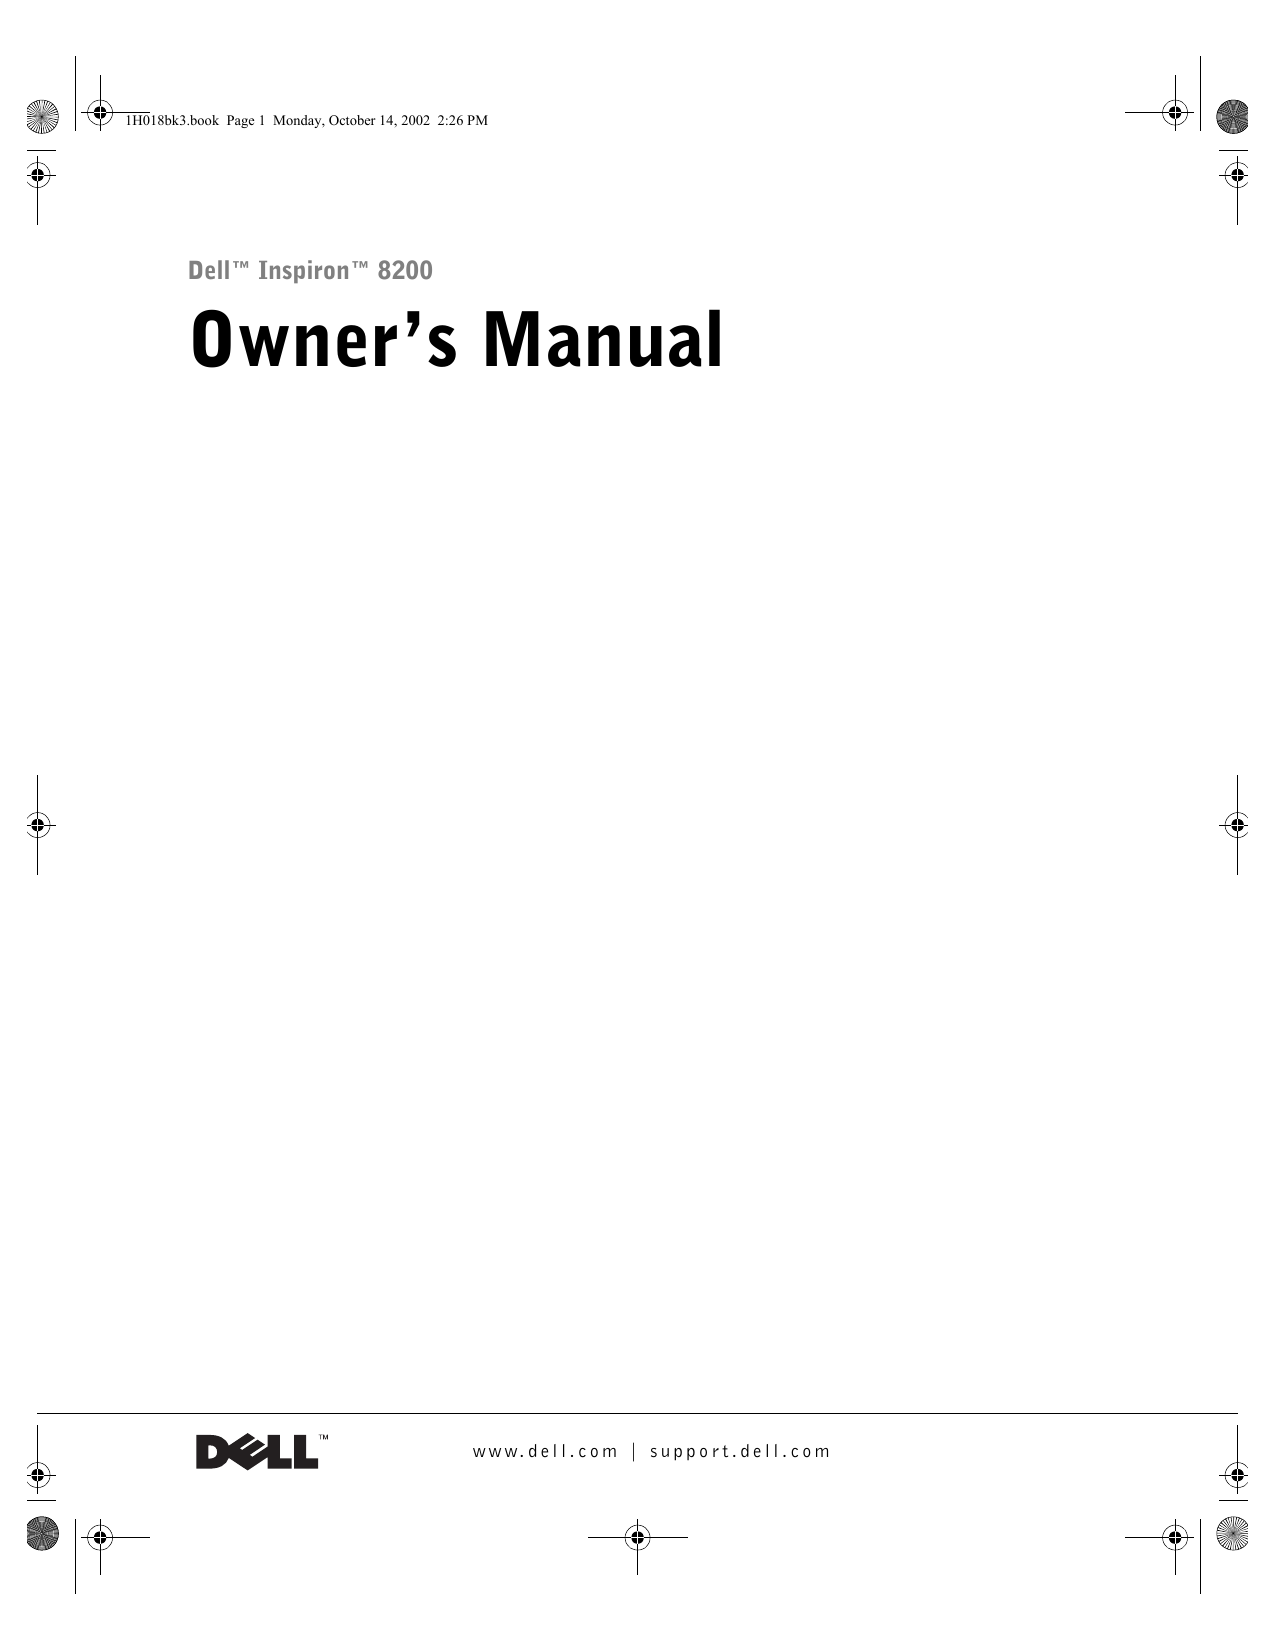 dell inspiron 8200 service manual free pdf download 80 pages rh manualagent com Dell Inspiron 8200 Battery Changing Dell Inspiron 8200 Battery